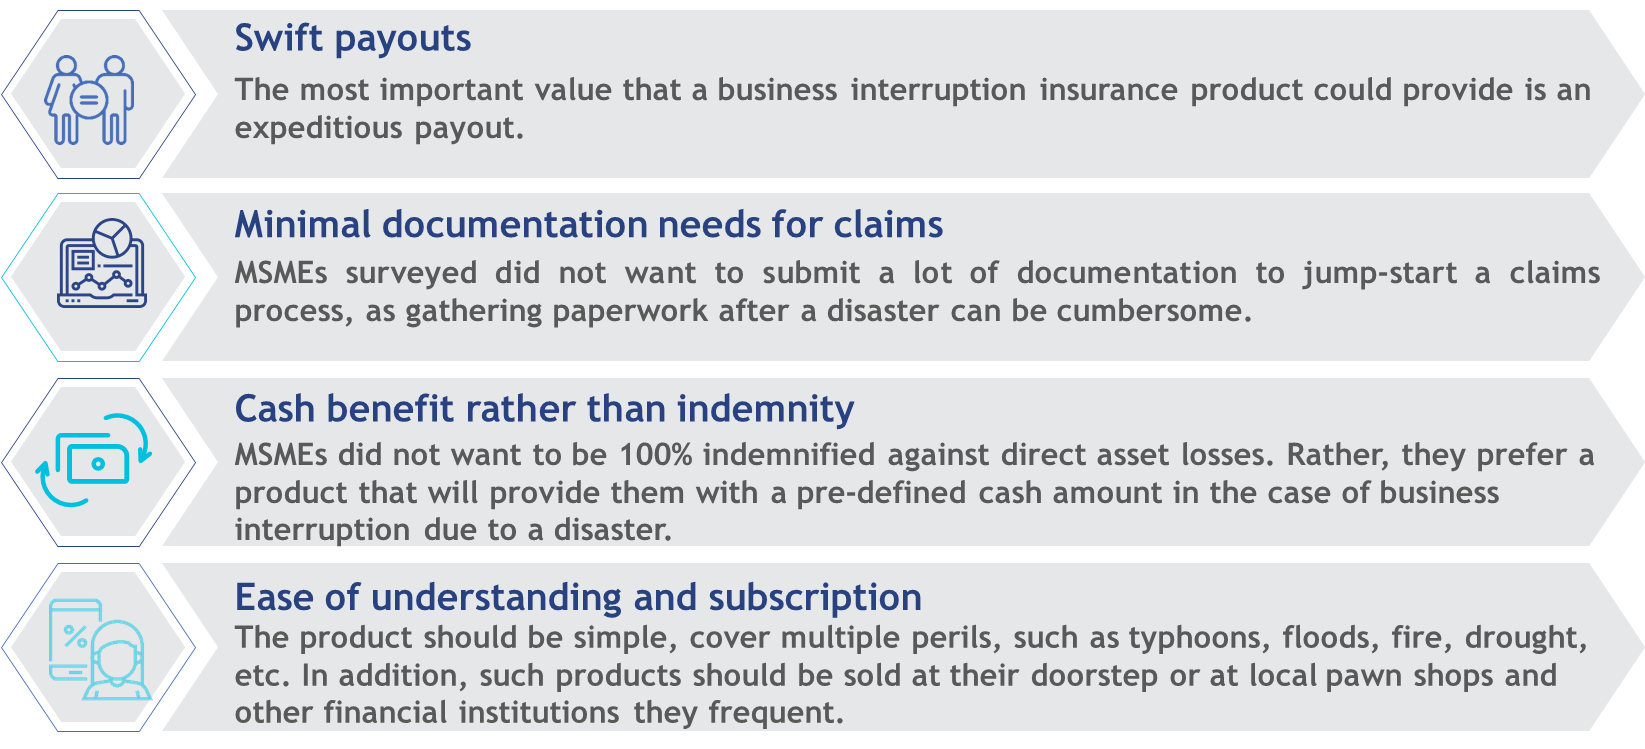 MSME identified features for business interruption insurance product